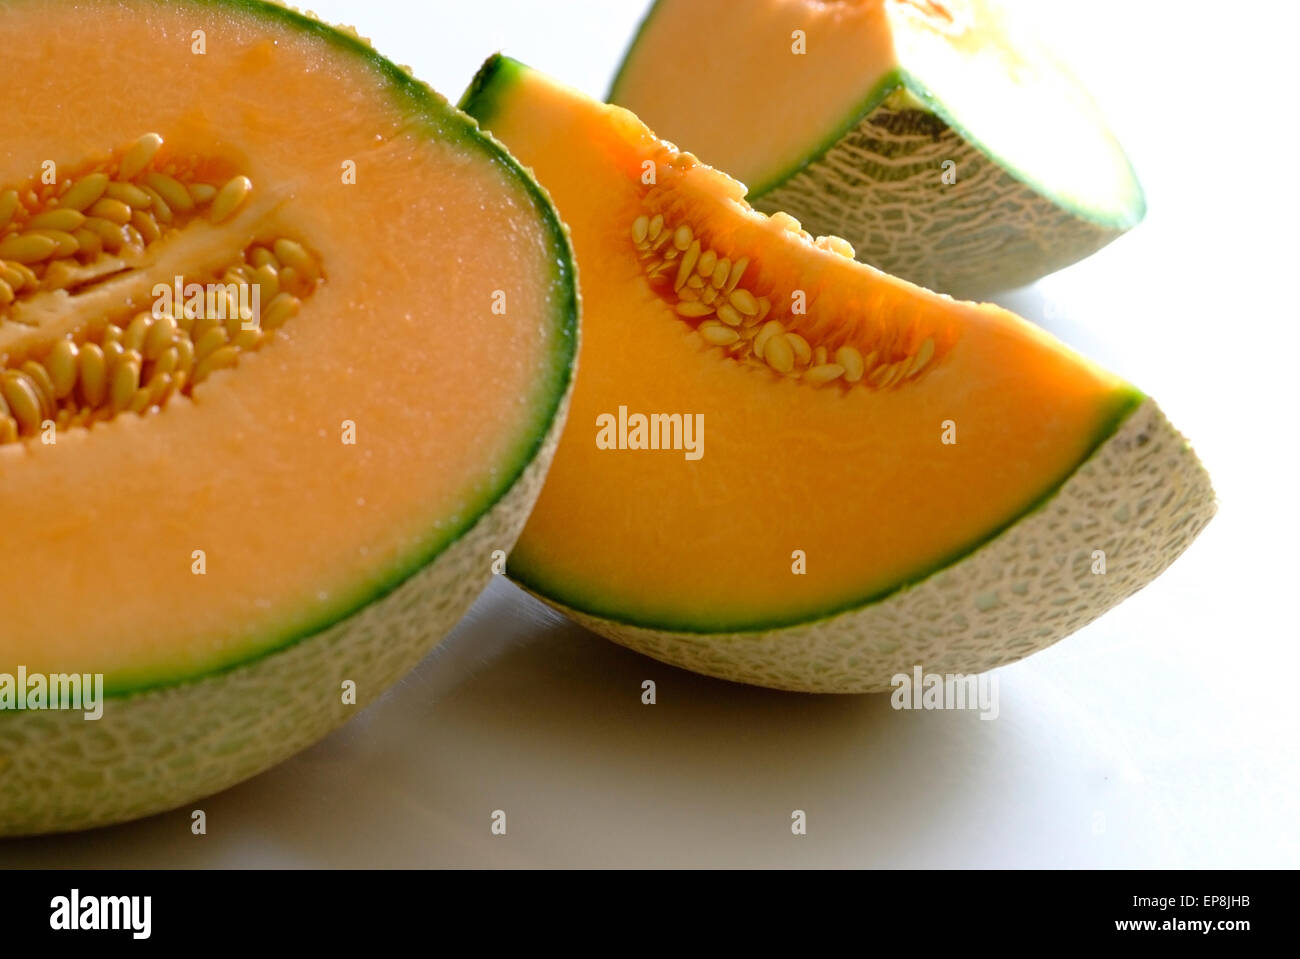 Spanspek Is A Melon Thename Is Unique To South Africa And Comes From Stock Photo Alamy In spain and most spanish speaking countries, the word for cantaloupe is melón. https www alamy com stock photo spanspek is a melon thename is unique to south africa and comes from 82554119 html